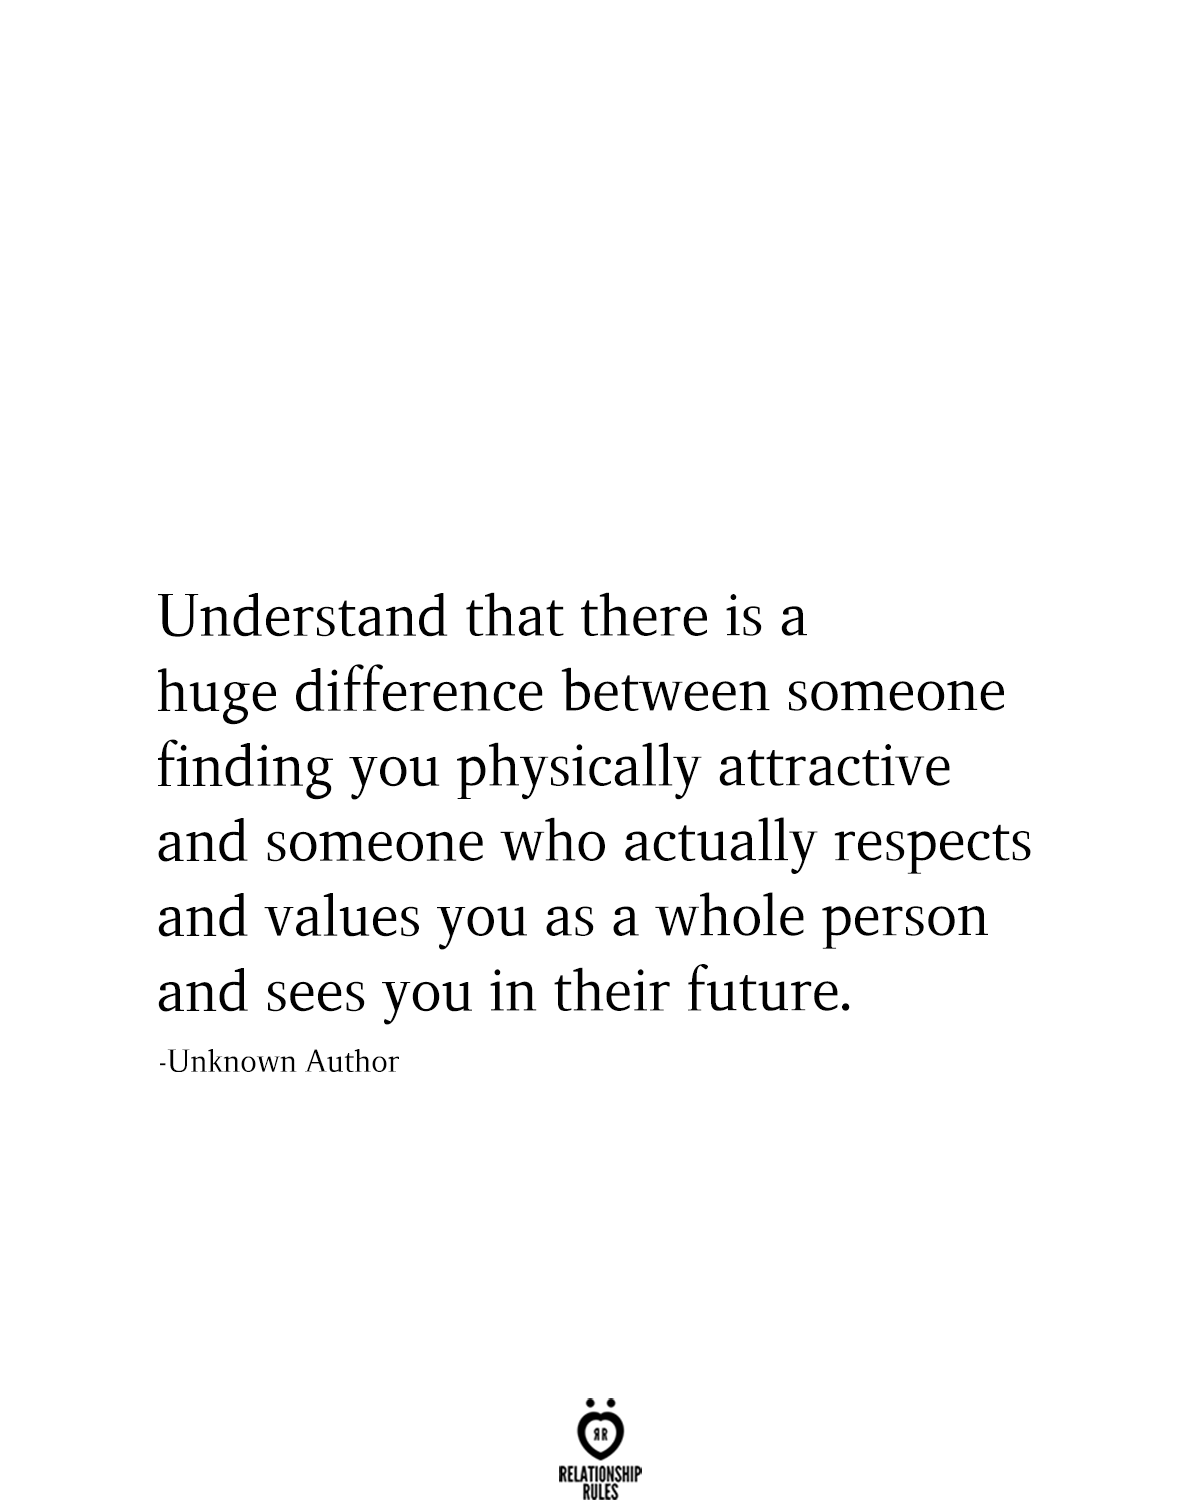 Understand that there is a huge difference between someone finding you physically attractive and someone who actually respects and values you as a whole person and sees you in their future.  -Unknown Author